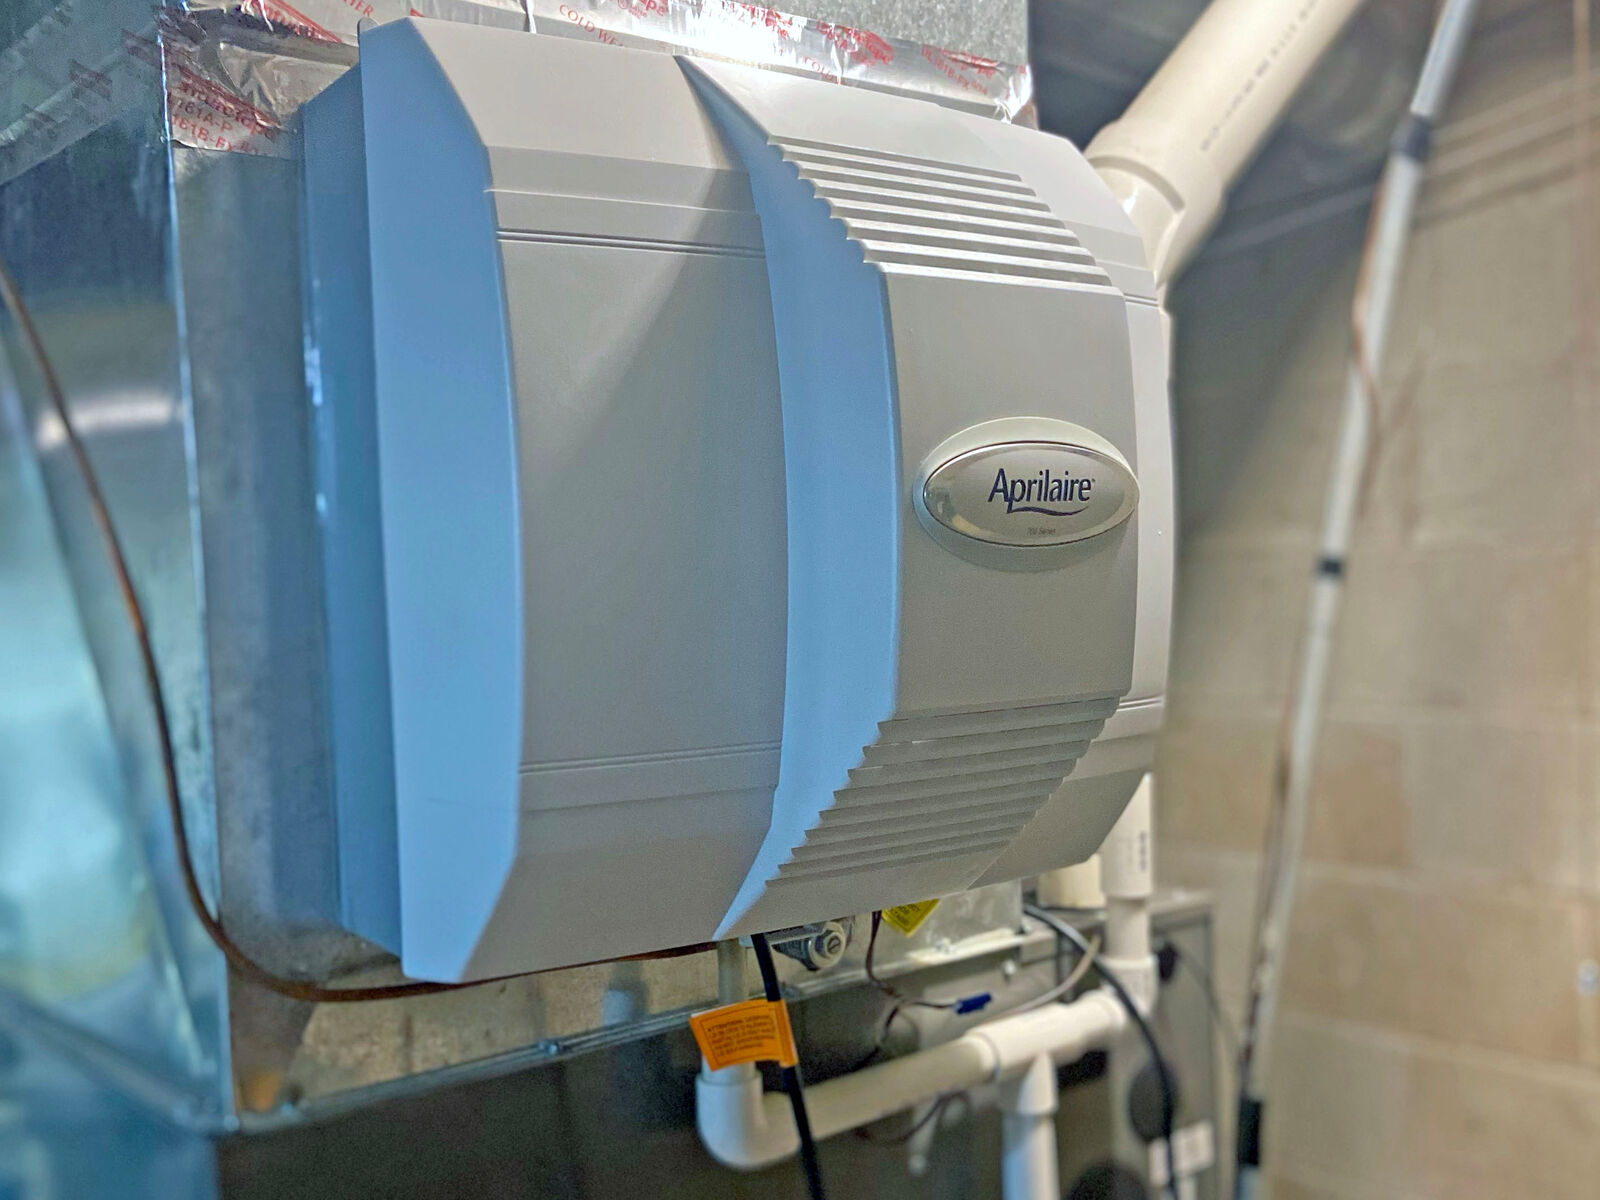 A newer hvac-mounted humidifier unit